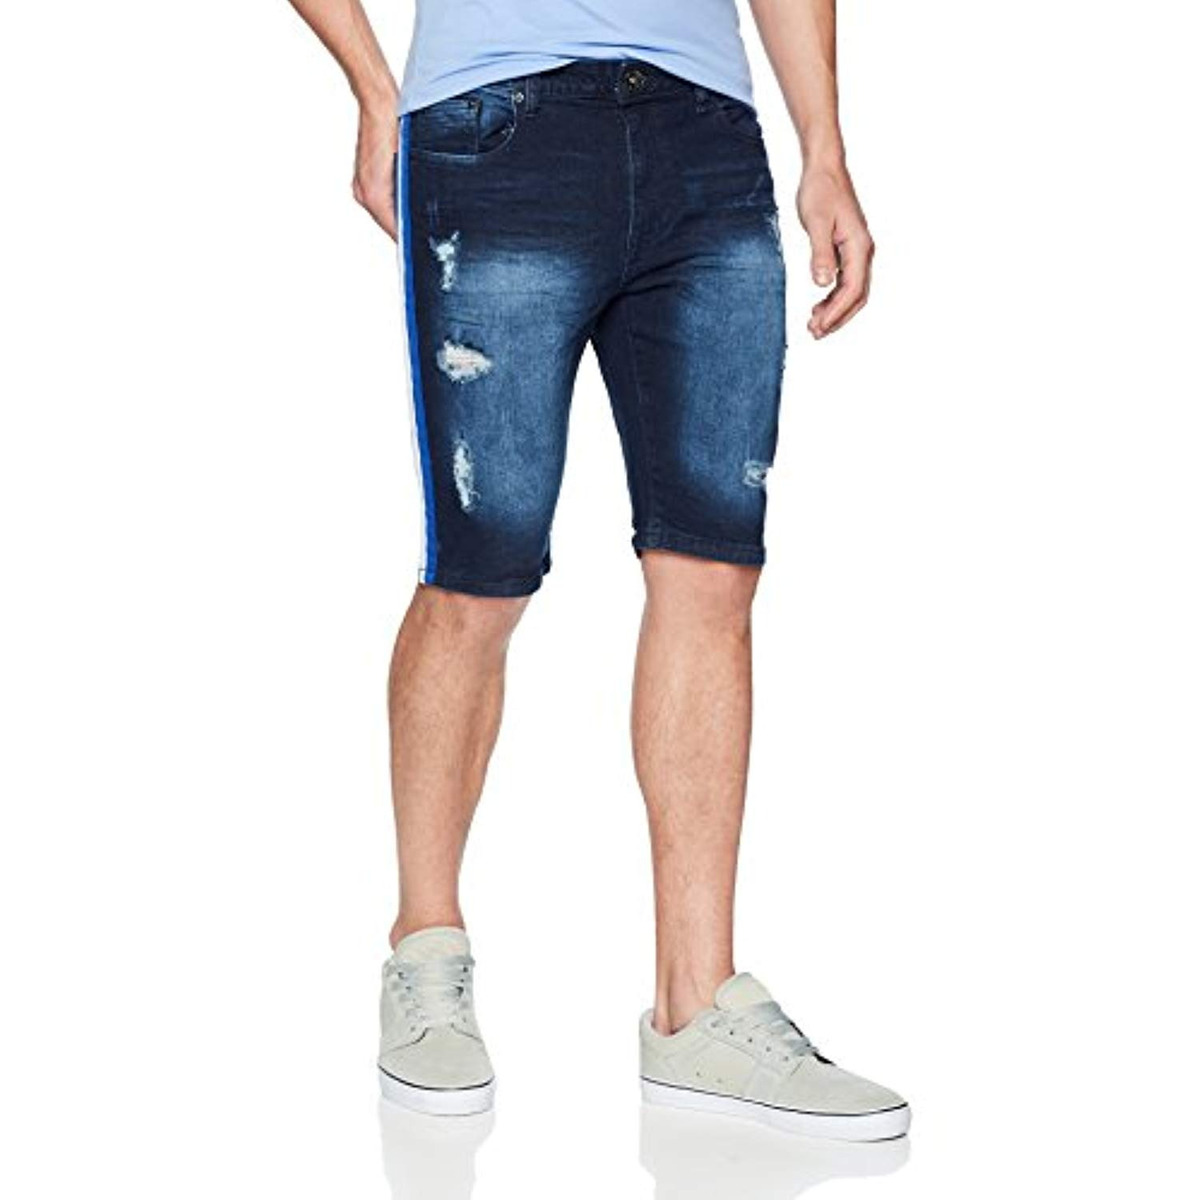 WT02 Mens Stretch Denim Shorts with Destructed Ripped and Repaired